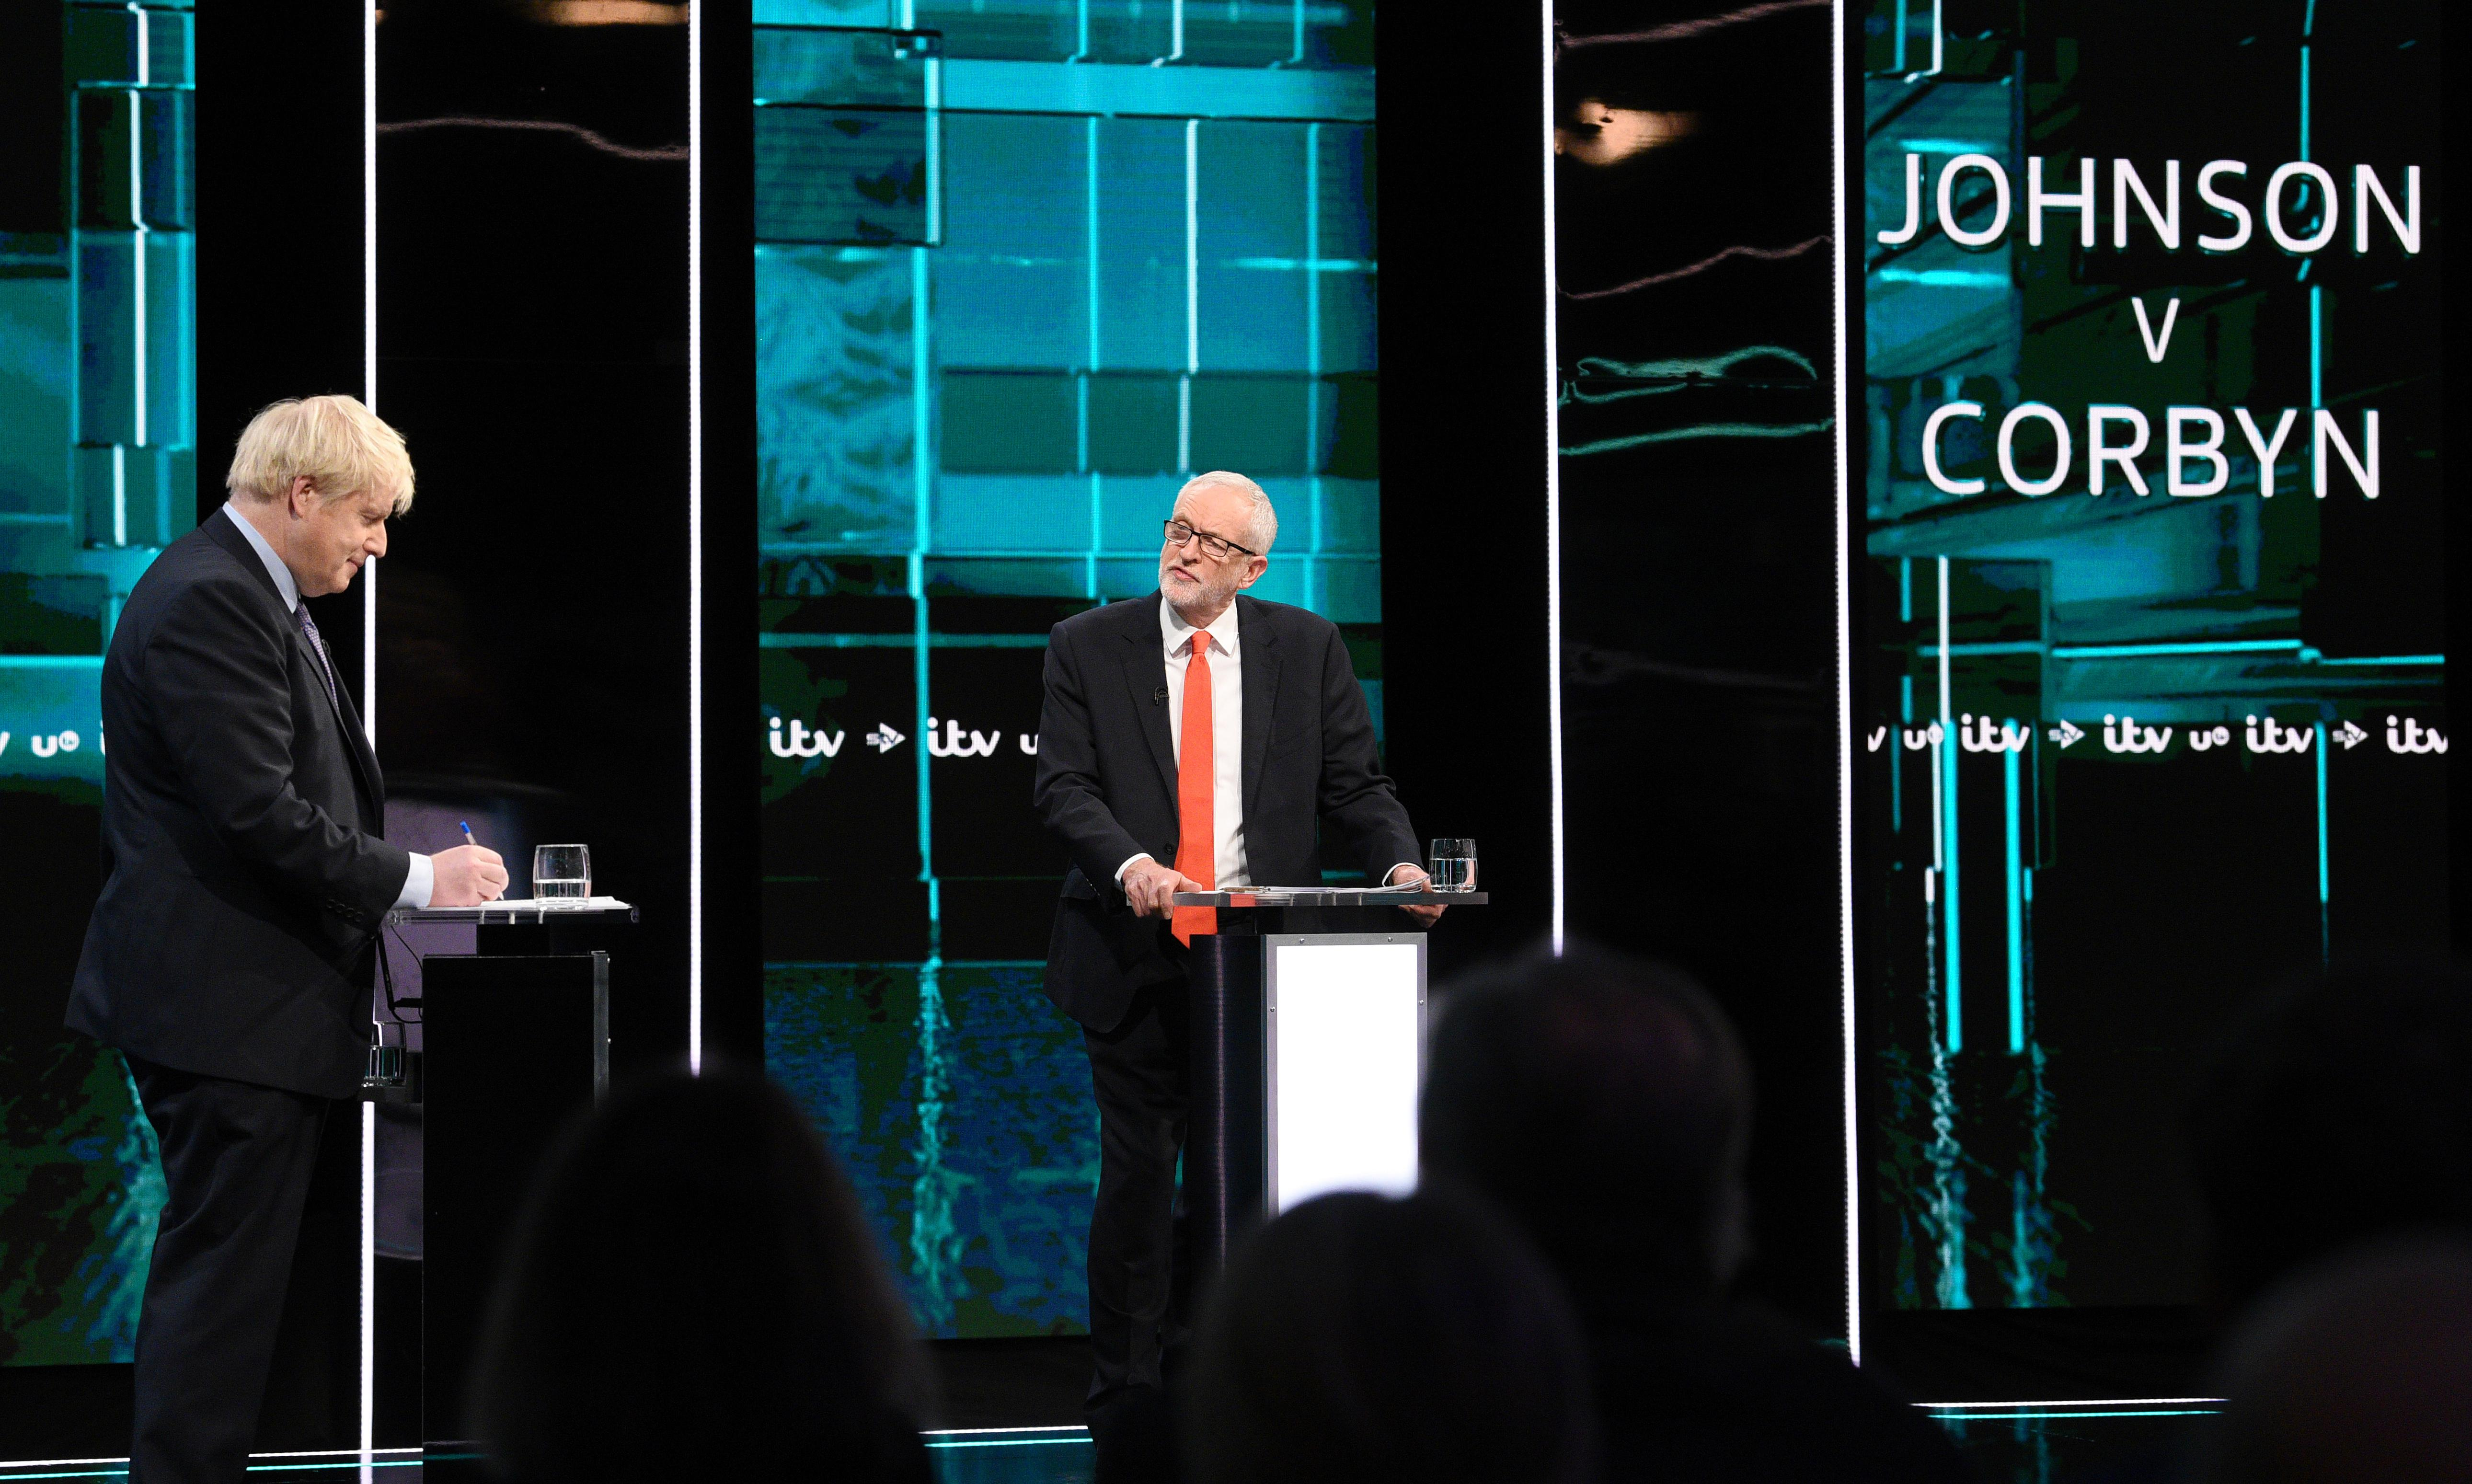 How plausible are Johnson and Corbyn's election claims?